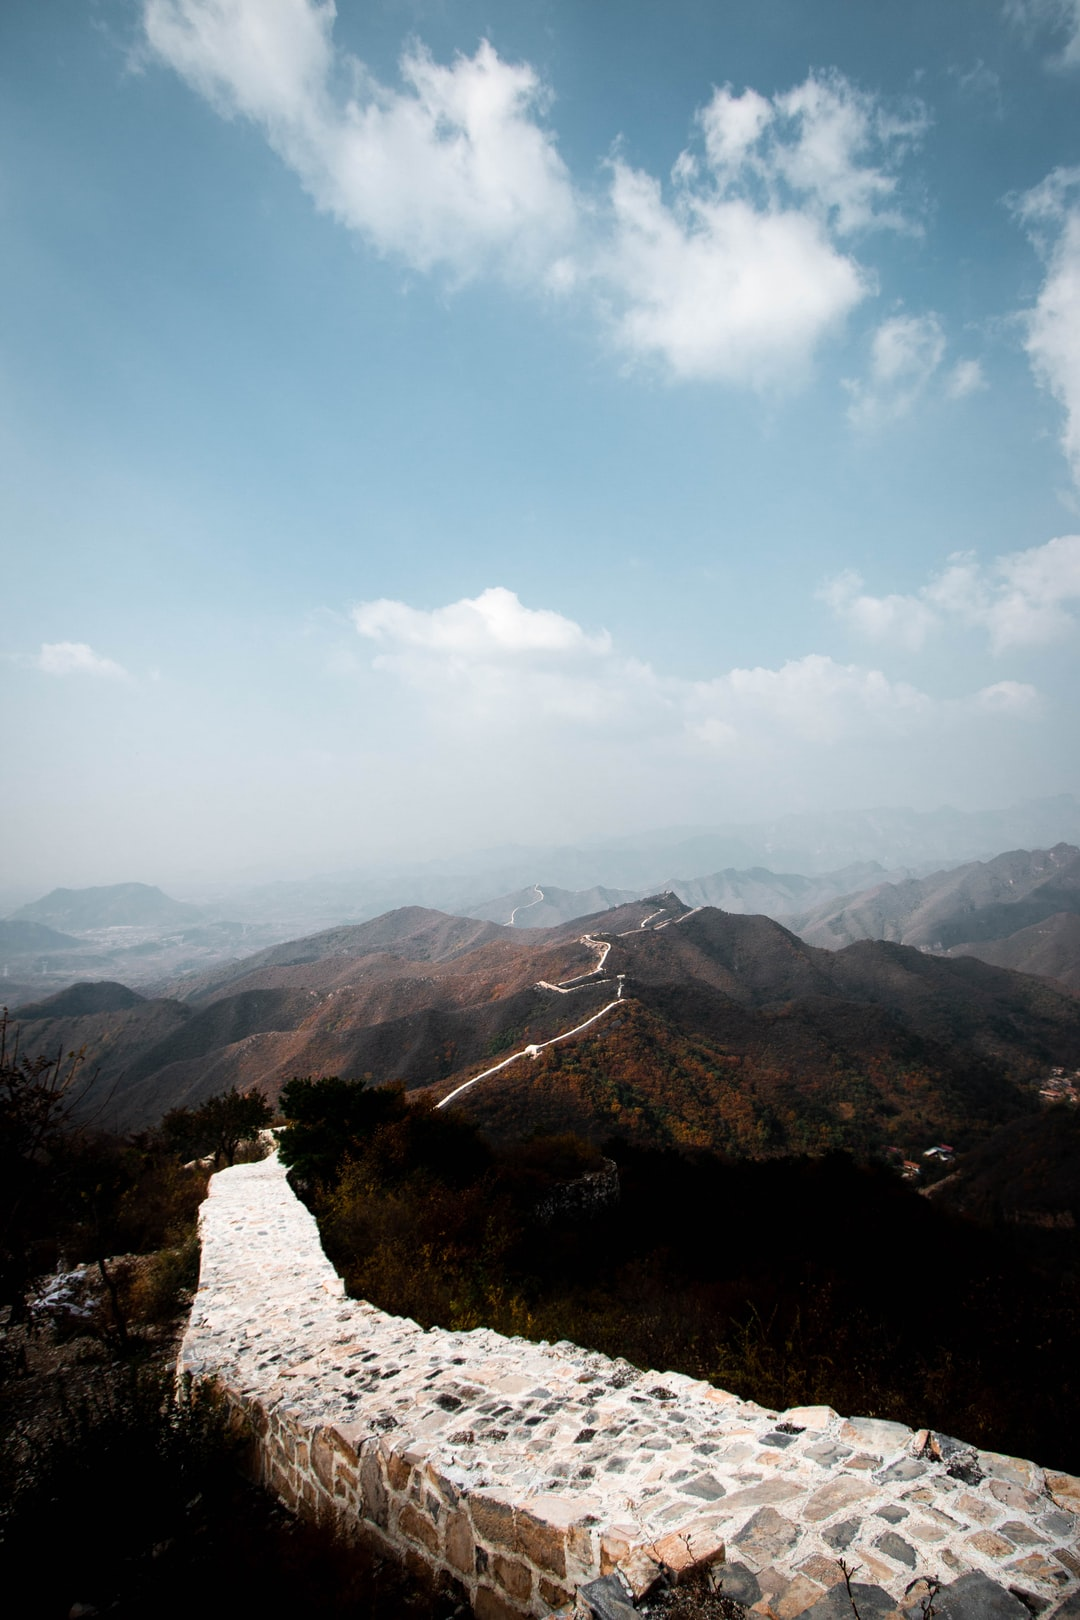 This was a shot I got on my recent trip to China. I did a charity trek with the Mental Health Foundation and walked both the older and newer parts of the wall. This was the newer 17th century part of the Great Wall of China, which runs all the way to Beijing.